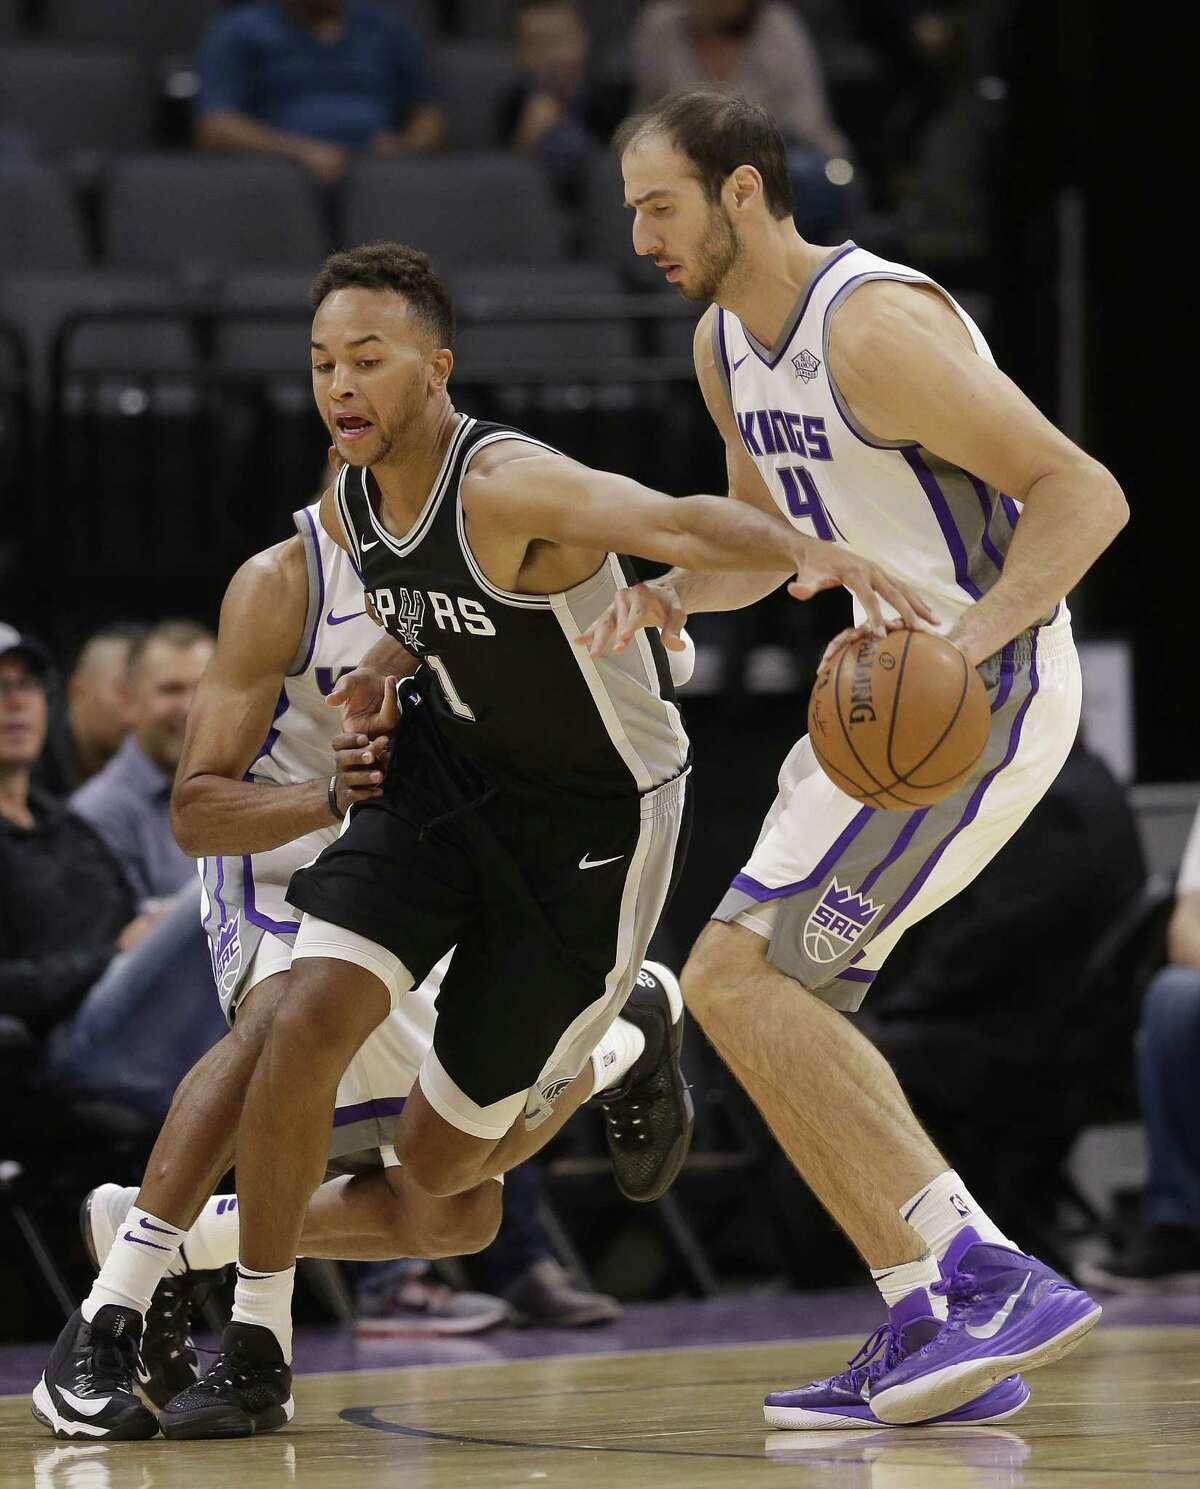 Spurs guard Kyle Anderson steals a pass intended for Kings center Kosta Koufos during the first quarter of a preseason game on Oct. 2, 2017, in Sacramento, Calif.